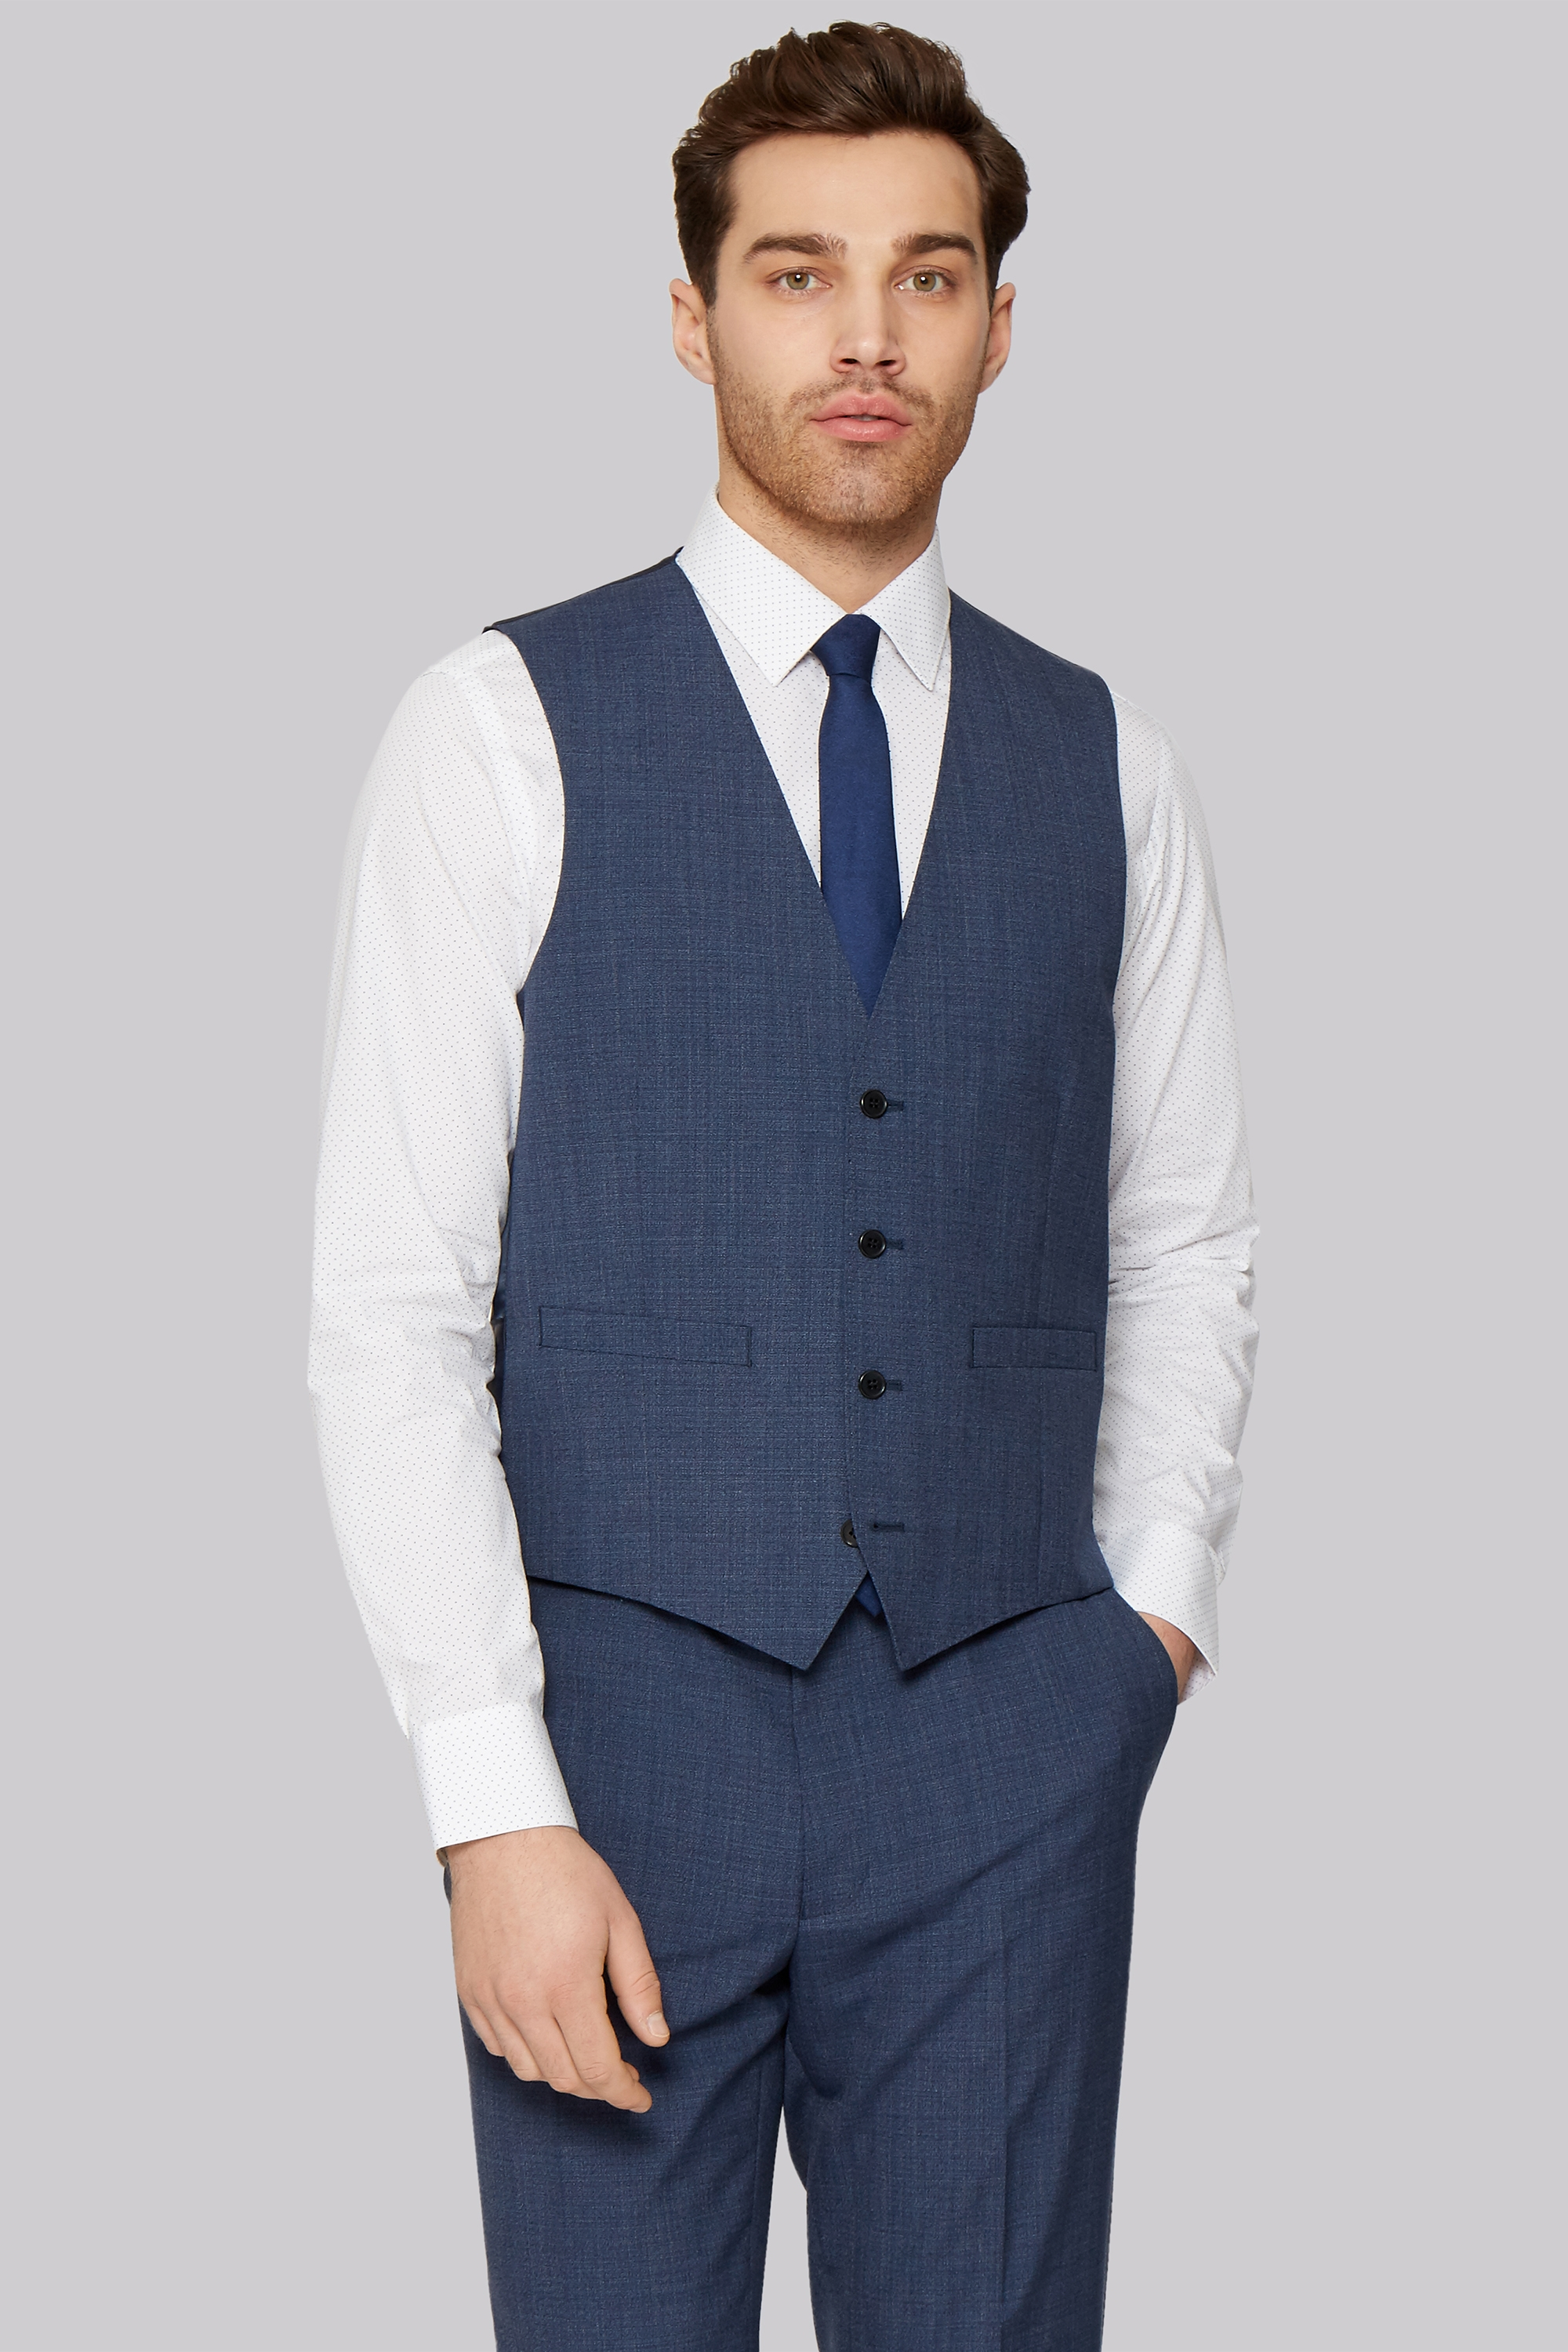 french connection slim fit blue textured waistcoat